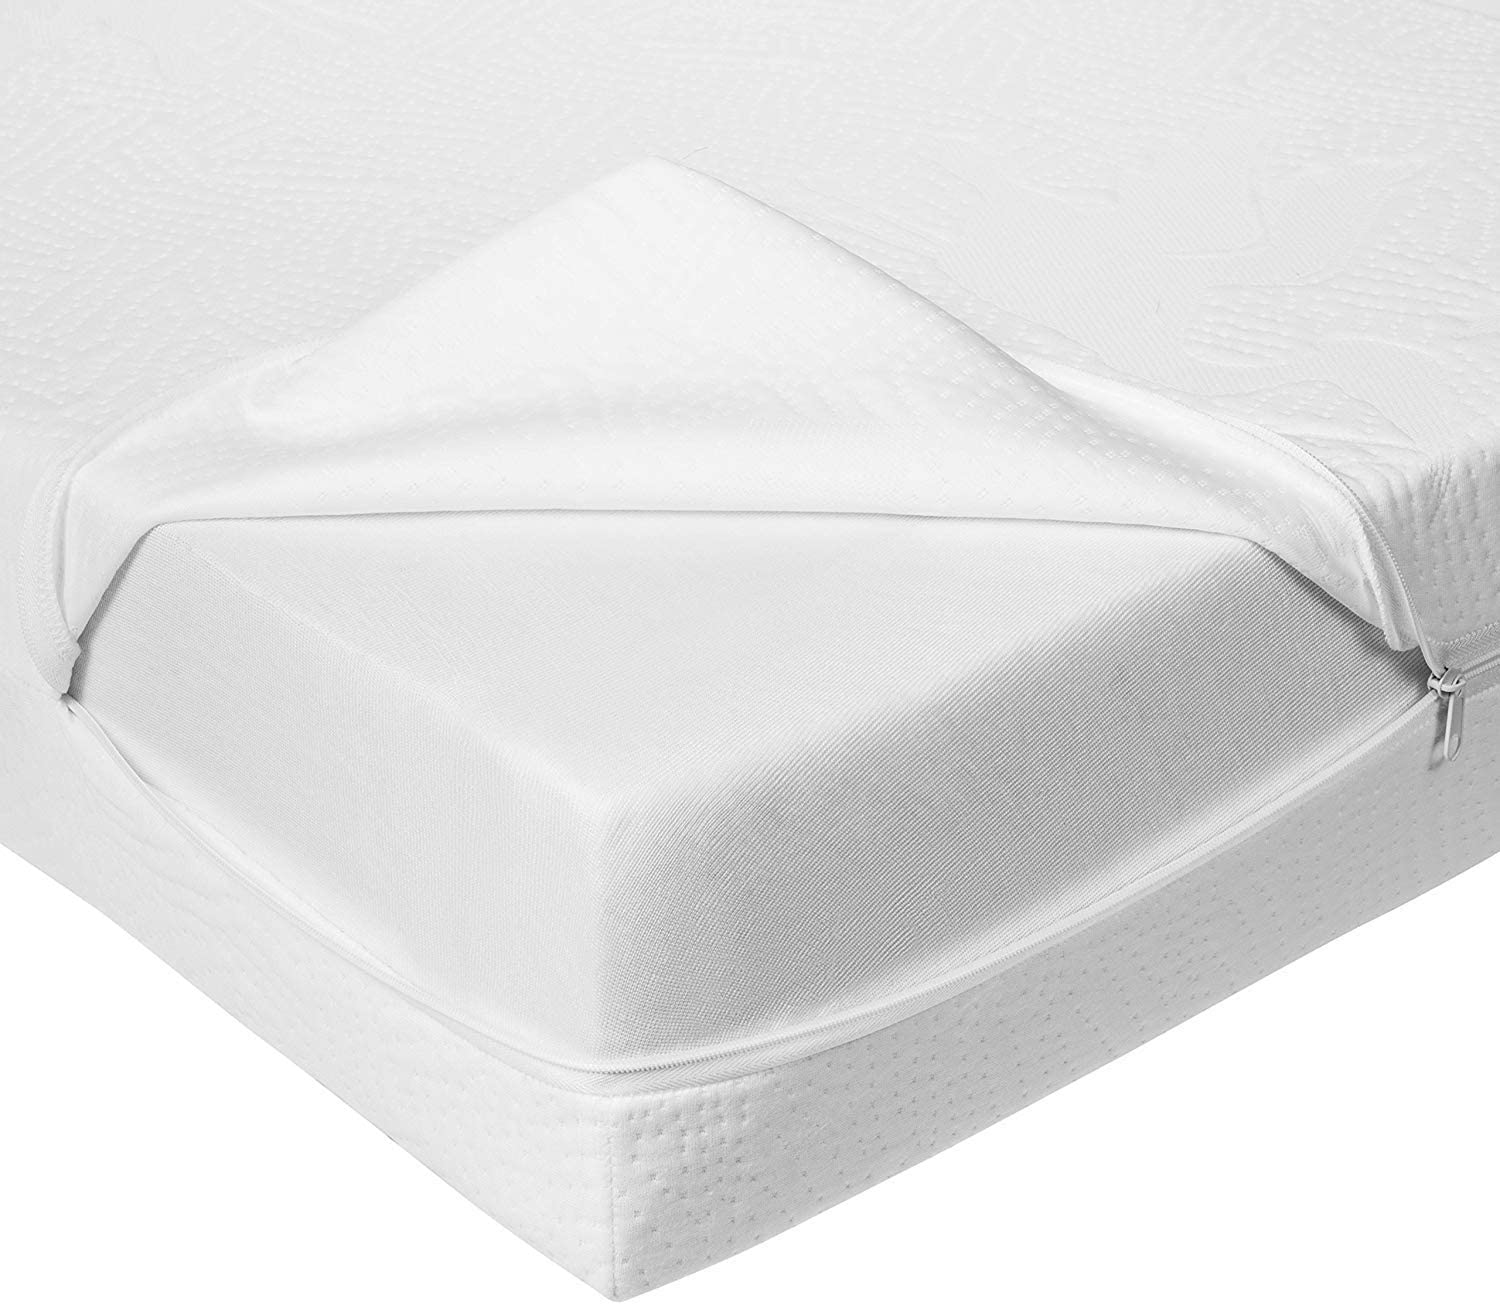 Bundle of Dreams Premium Organic Cotton Covered Water Repellent Two Stage Crib Mattress 28 x 52 x 5